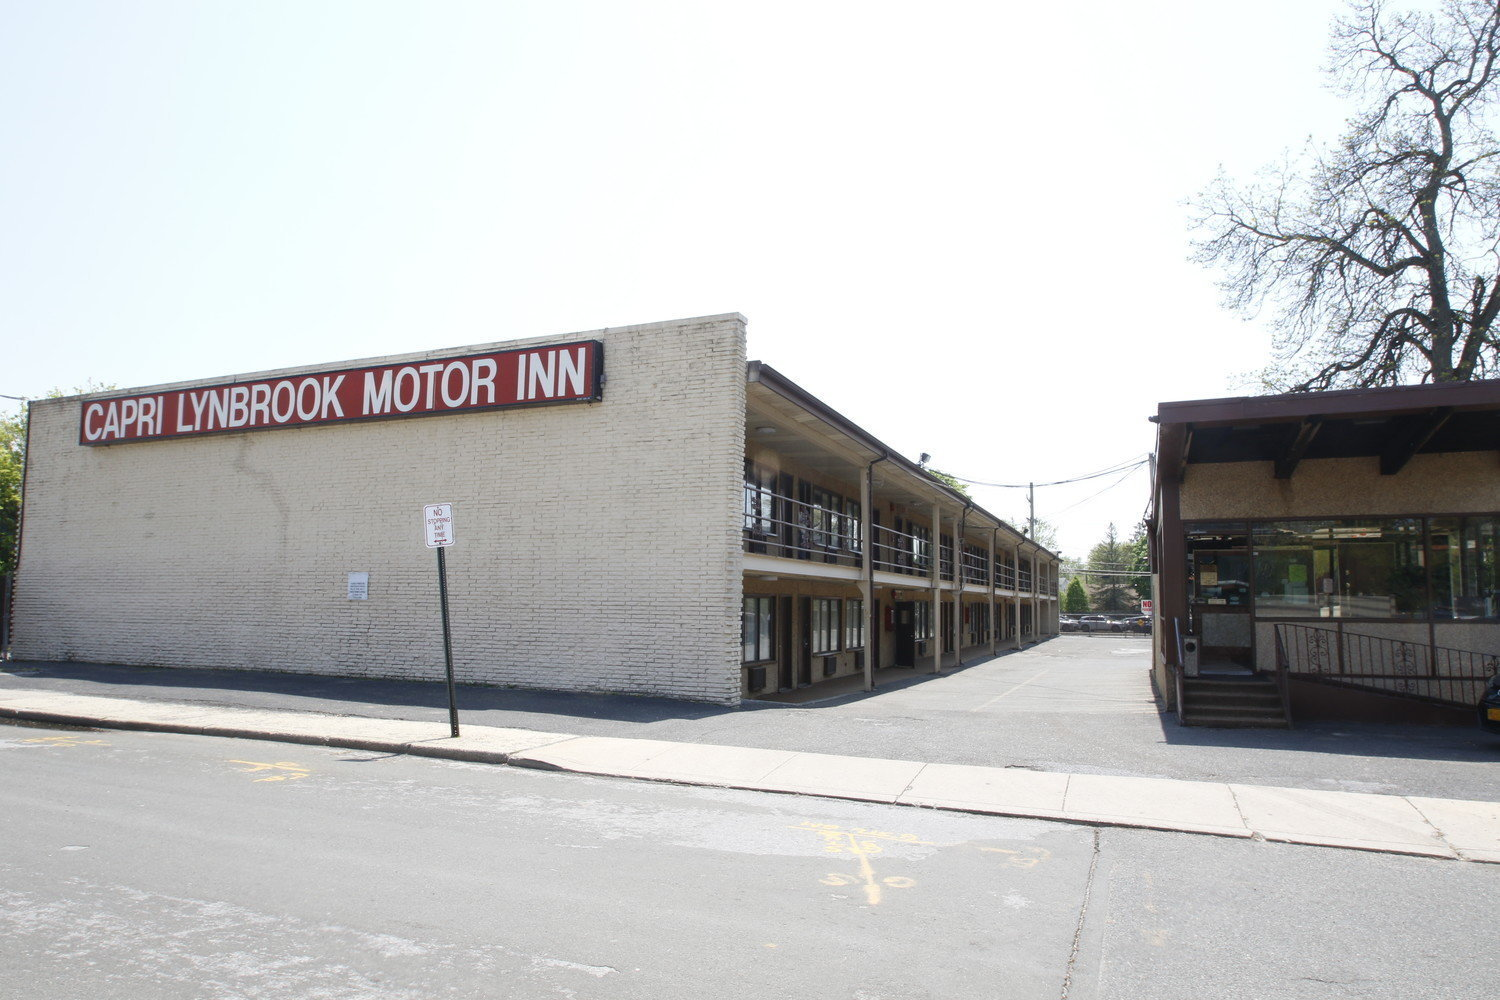 The Lynbrook Motor Inn, formerly the Capri, has for years been a neighborhood nuisance, according to village officials.